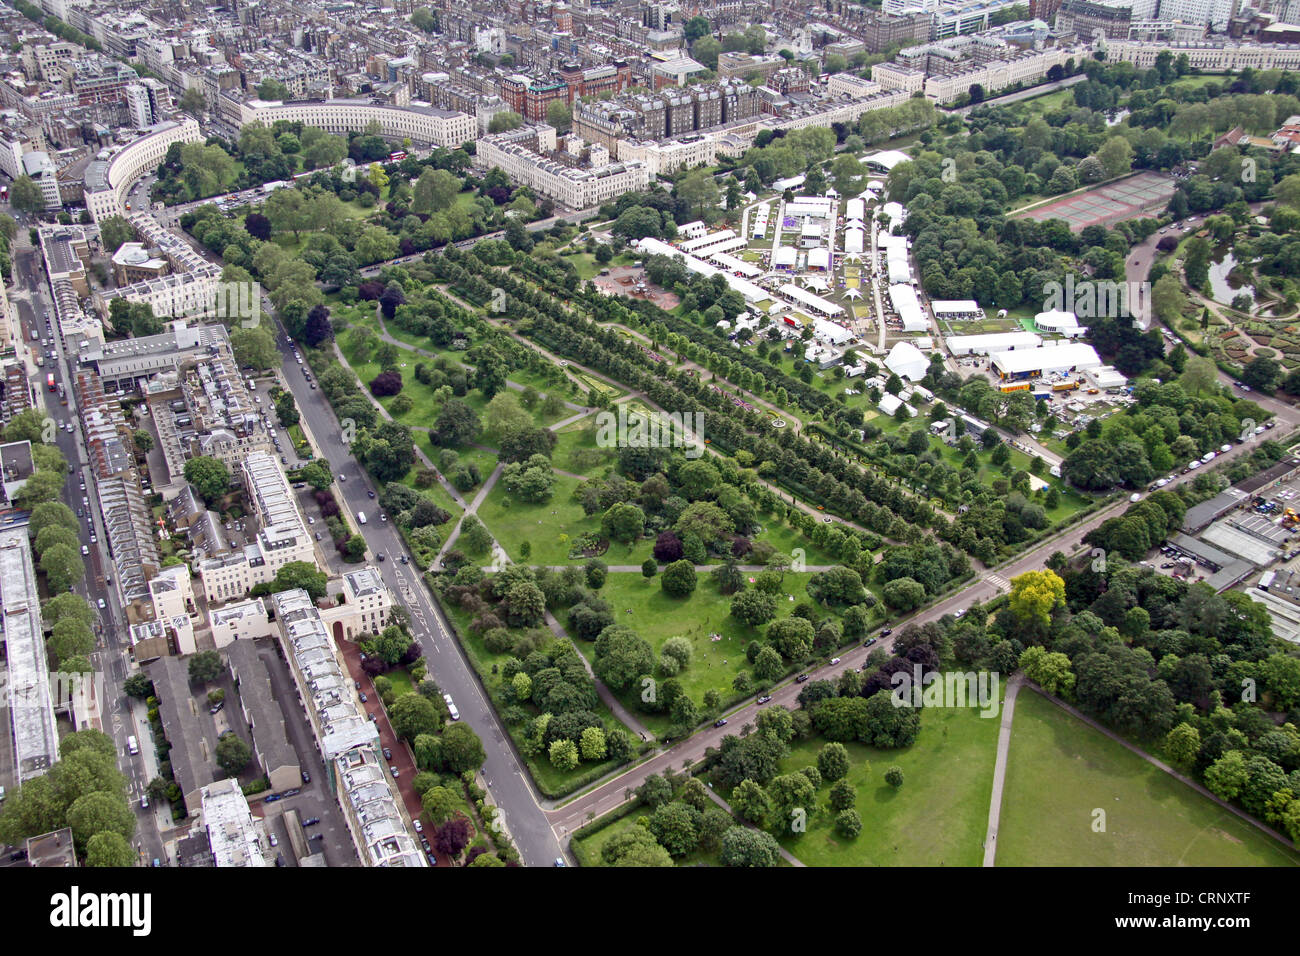 aerial view of Broad Walk and Park Square Gardens in Regent's Park, London NW1 - Stock Image